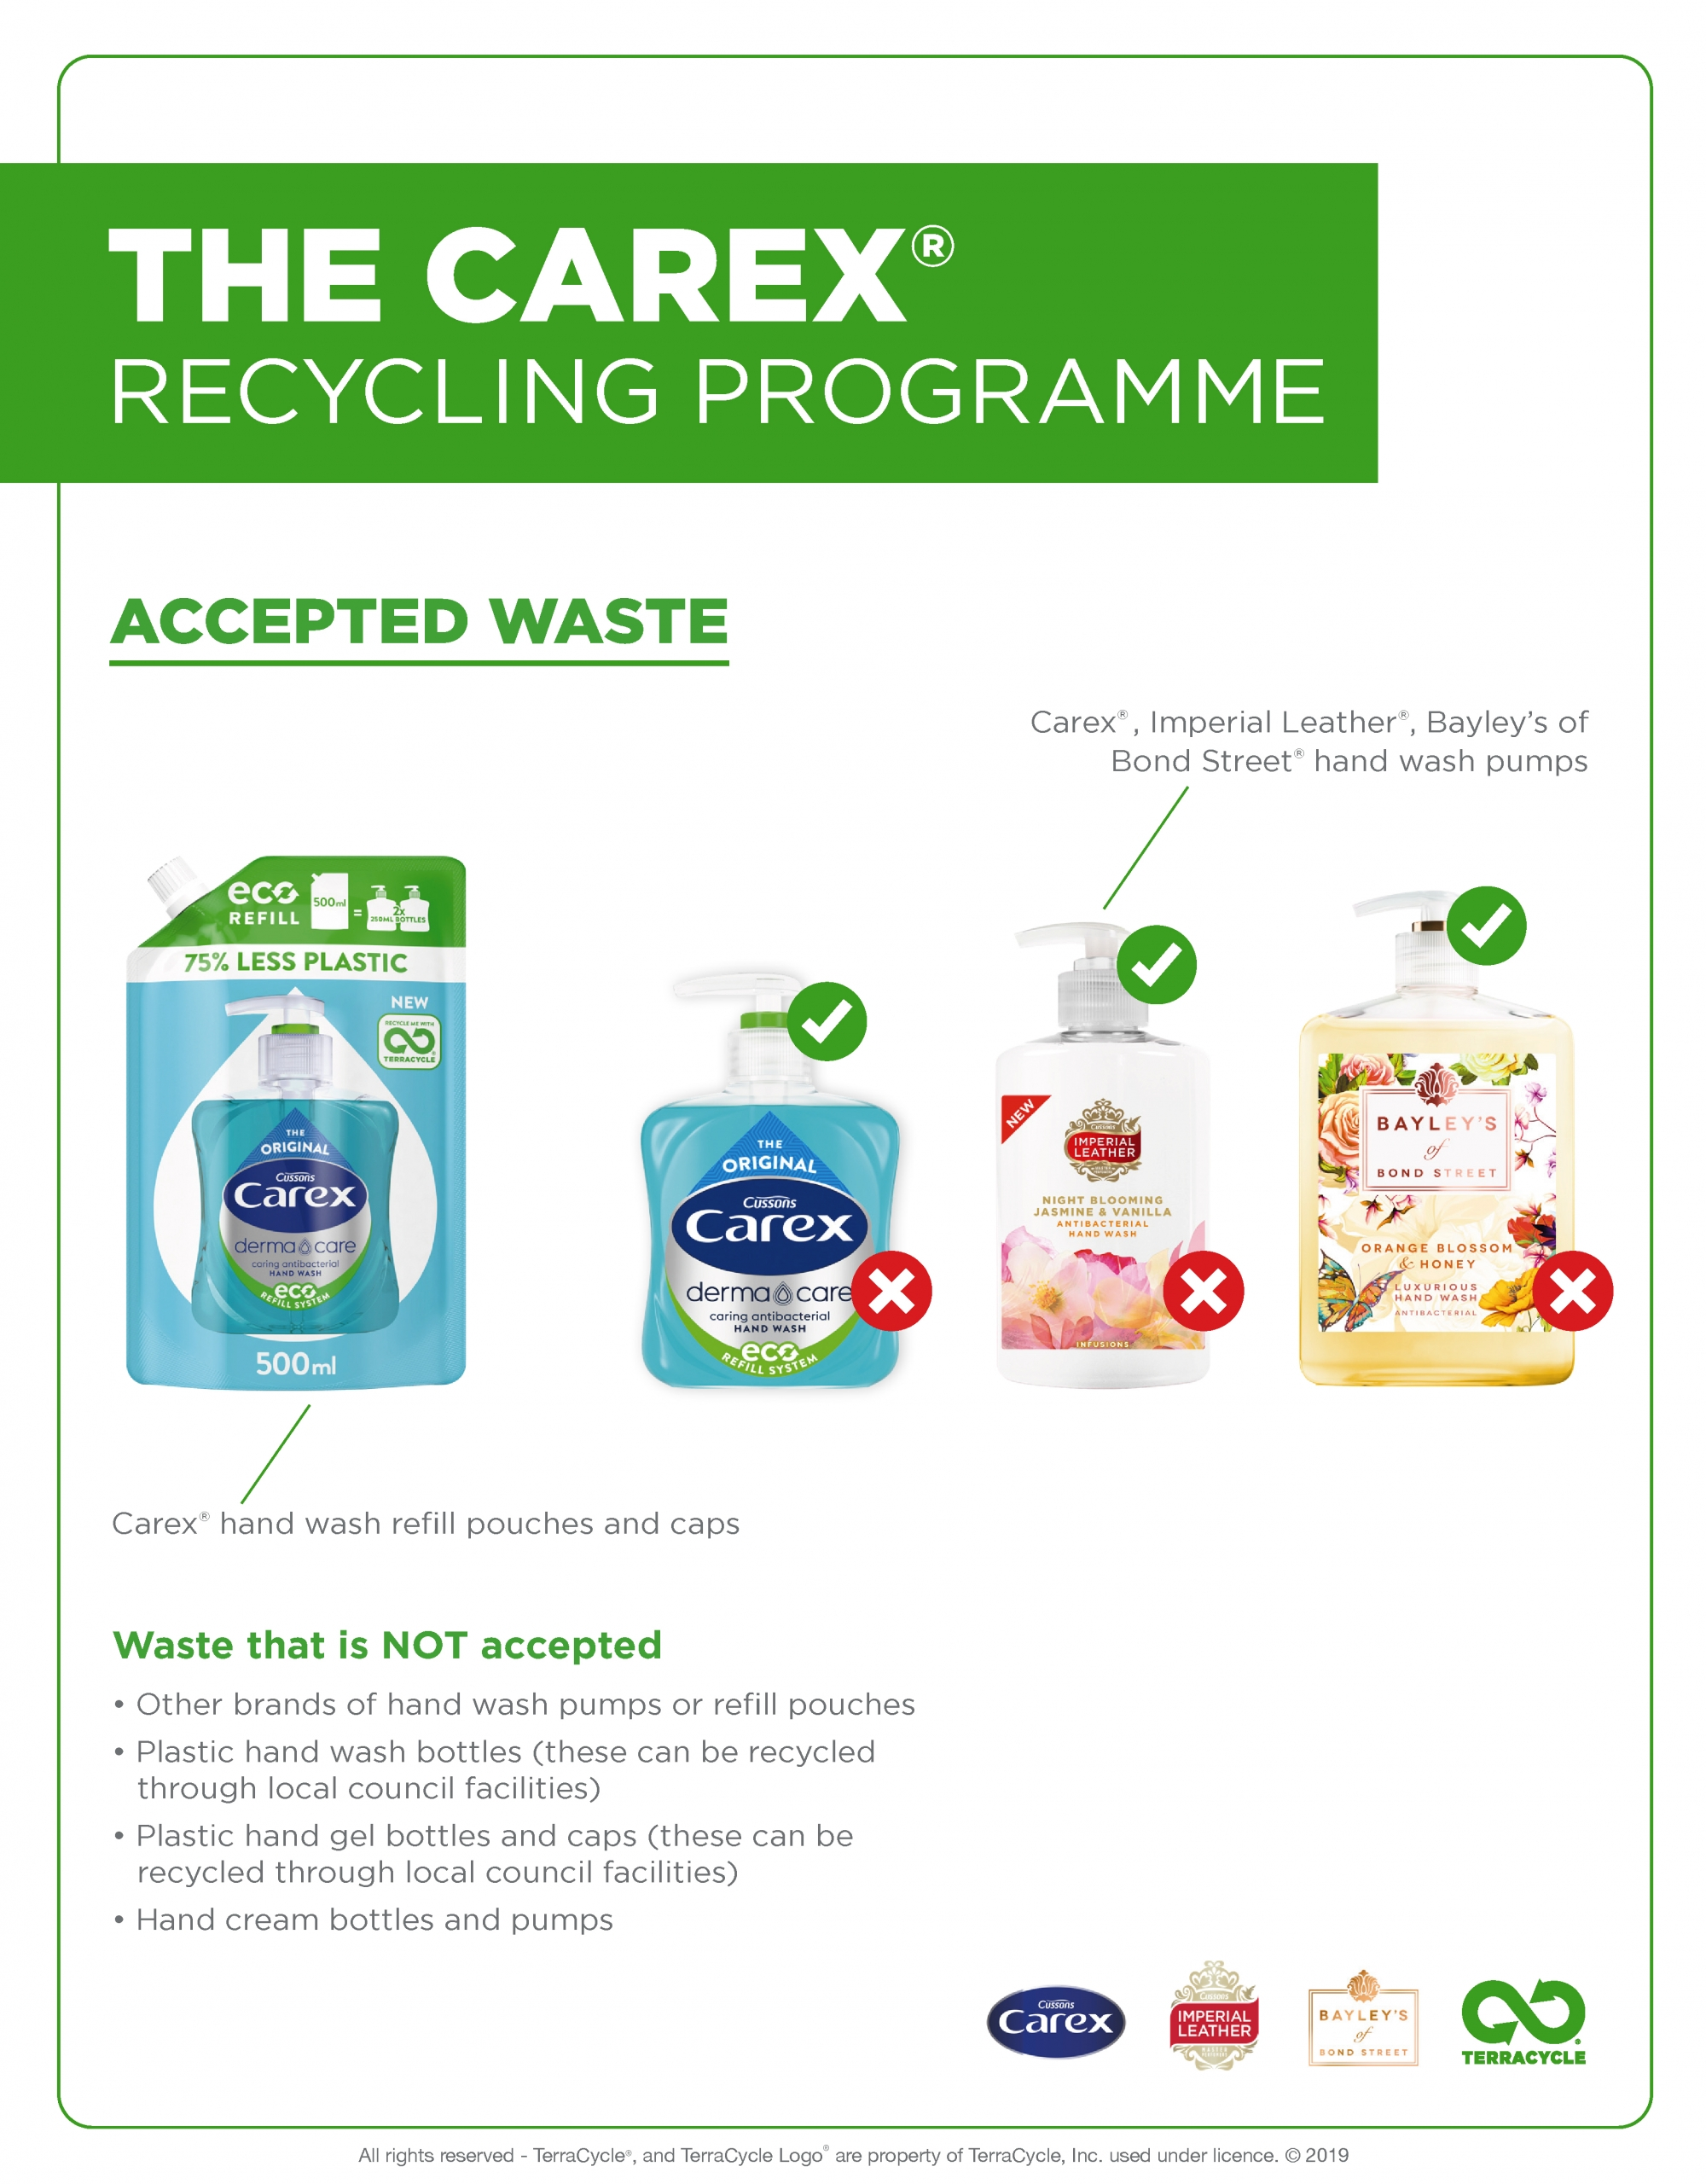 Carex recycling